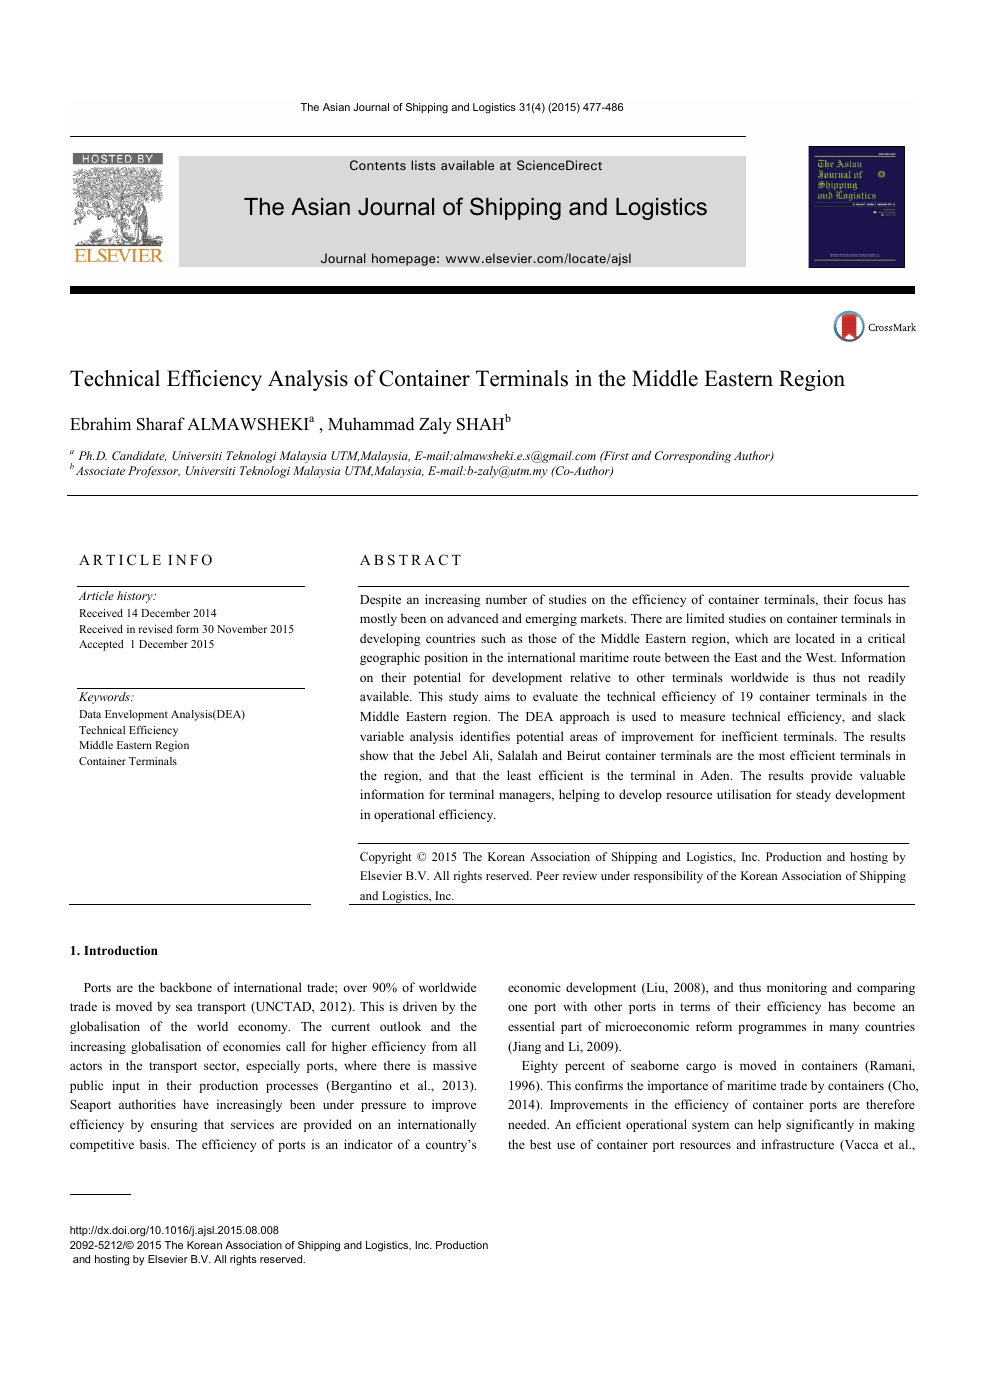 Technical Efficiency Analysis of Container Terminals in the